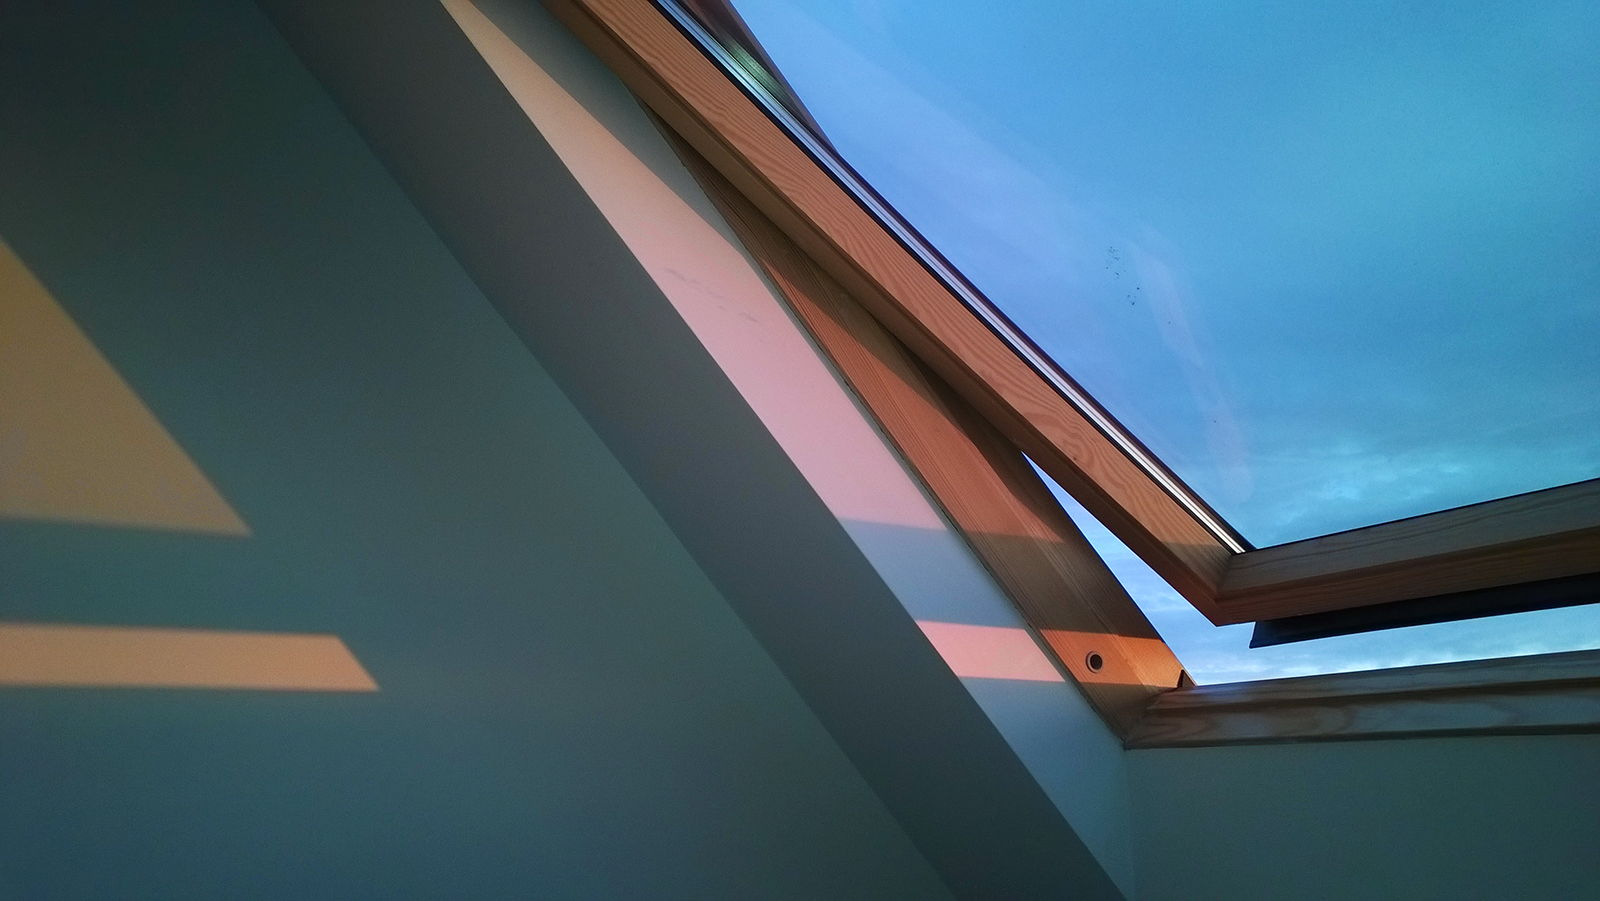 Sunset through velux window, Brighton, UK. Photograph by Tanya Clarke